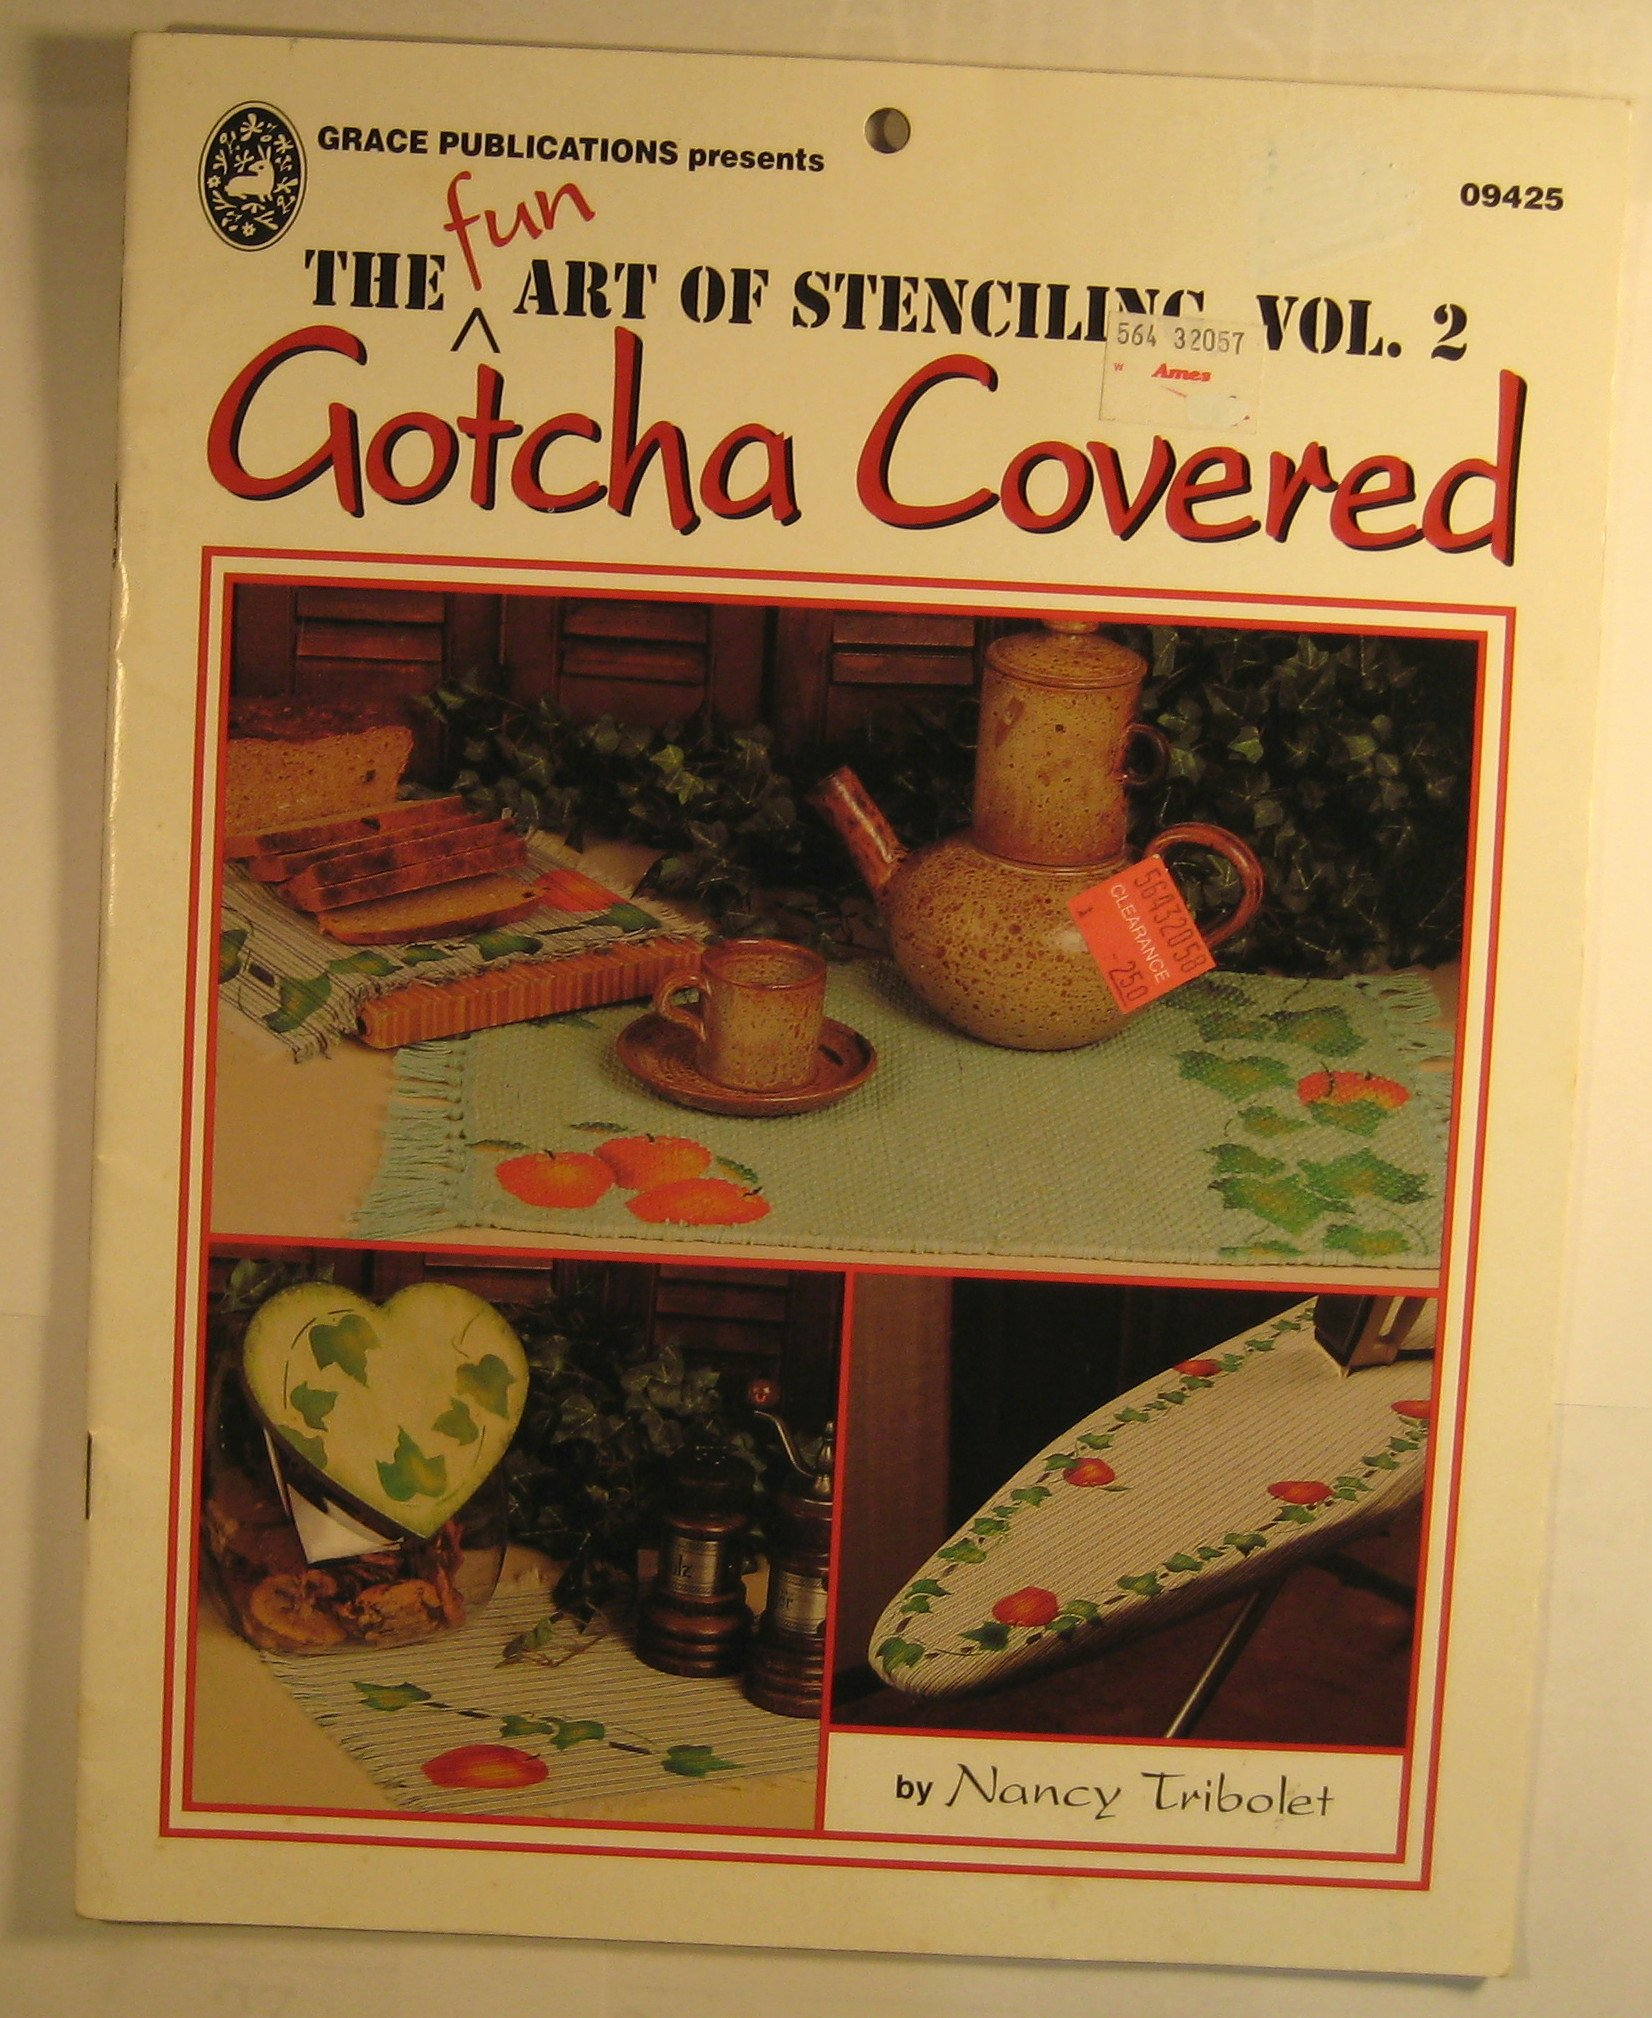 Gotcha Covered (The Fun Art of Stenciling, Vol. 2)